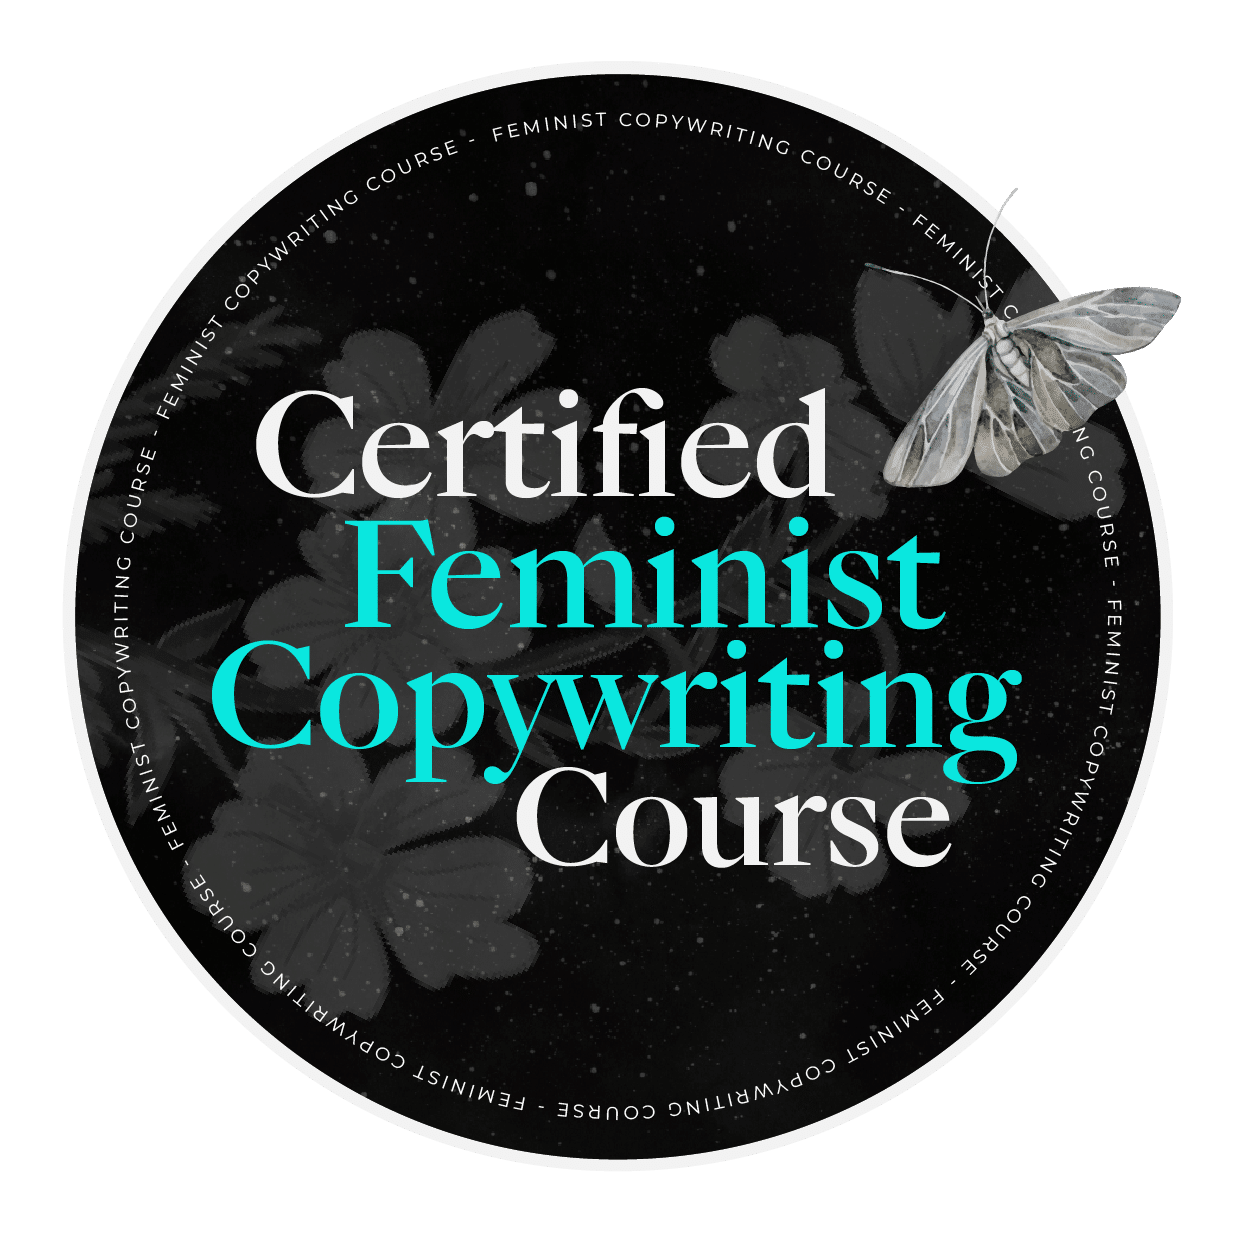 Certified Feminist Copywriting course